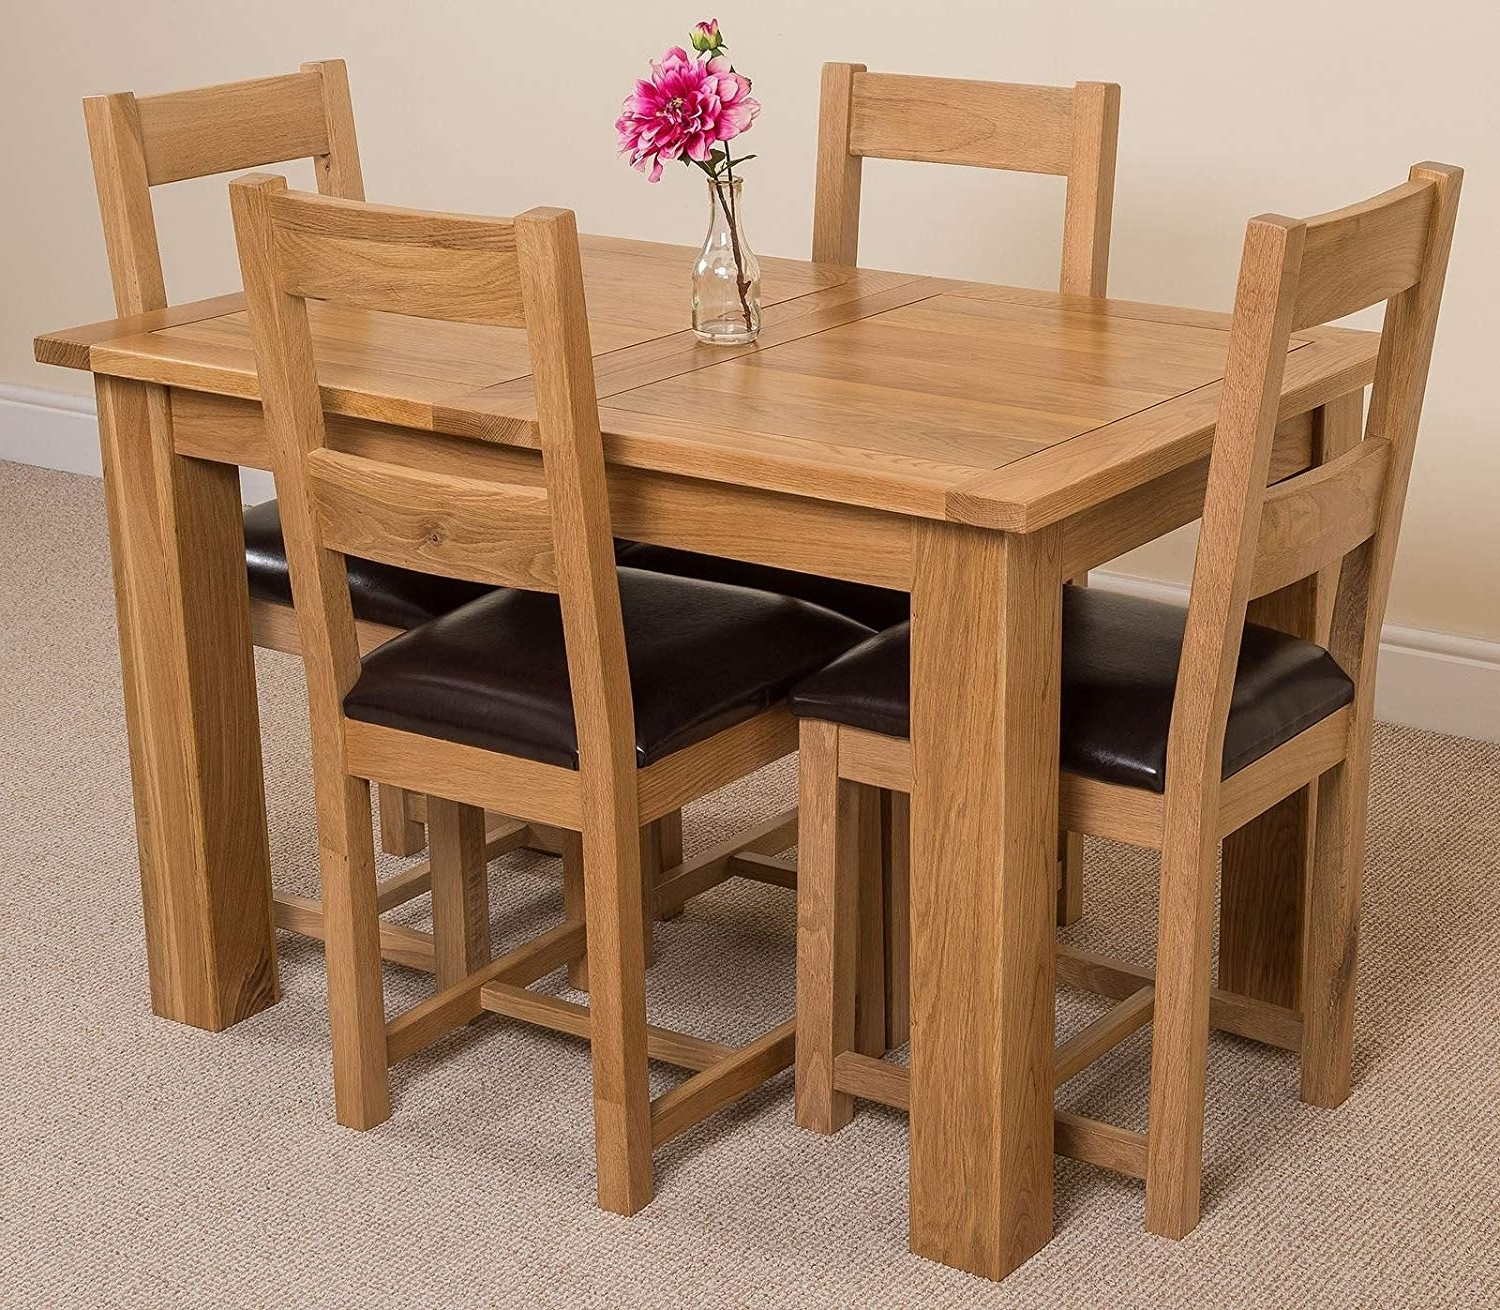 Extending Dining Table Sets Intended For Current Hampton Solid Oak (120 160 Cm) Extending Dining Table & 4 Lincoln (View 21 of 25)